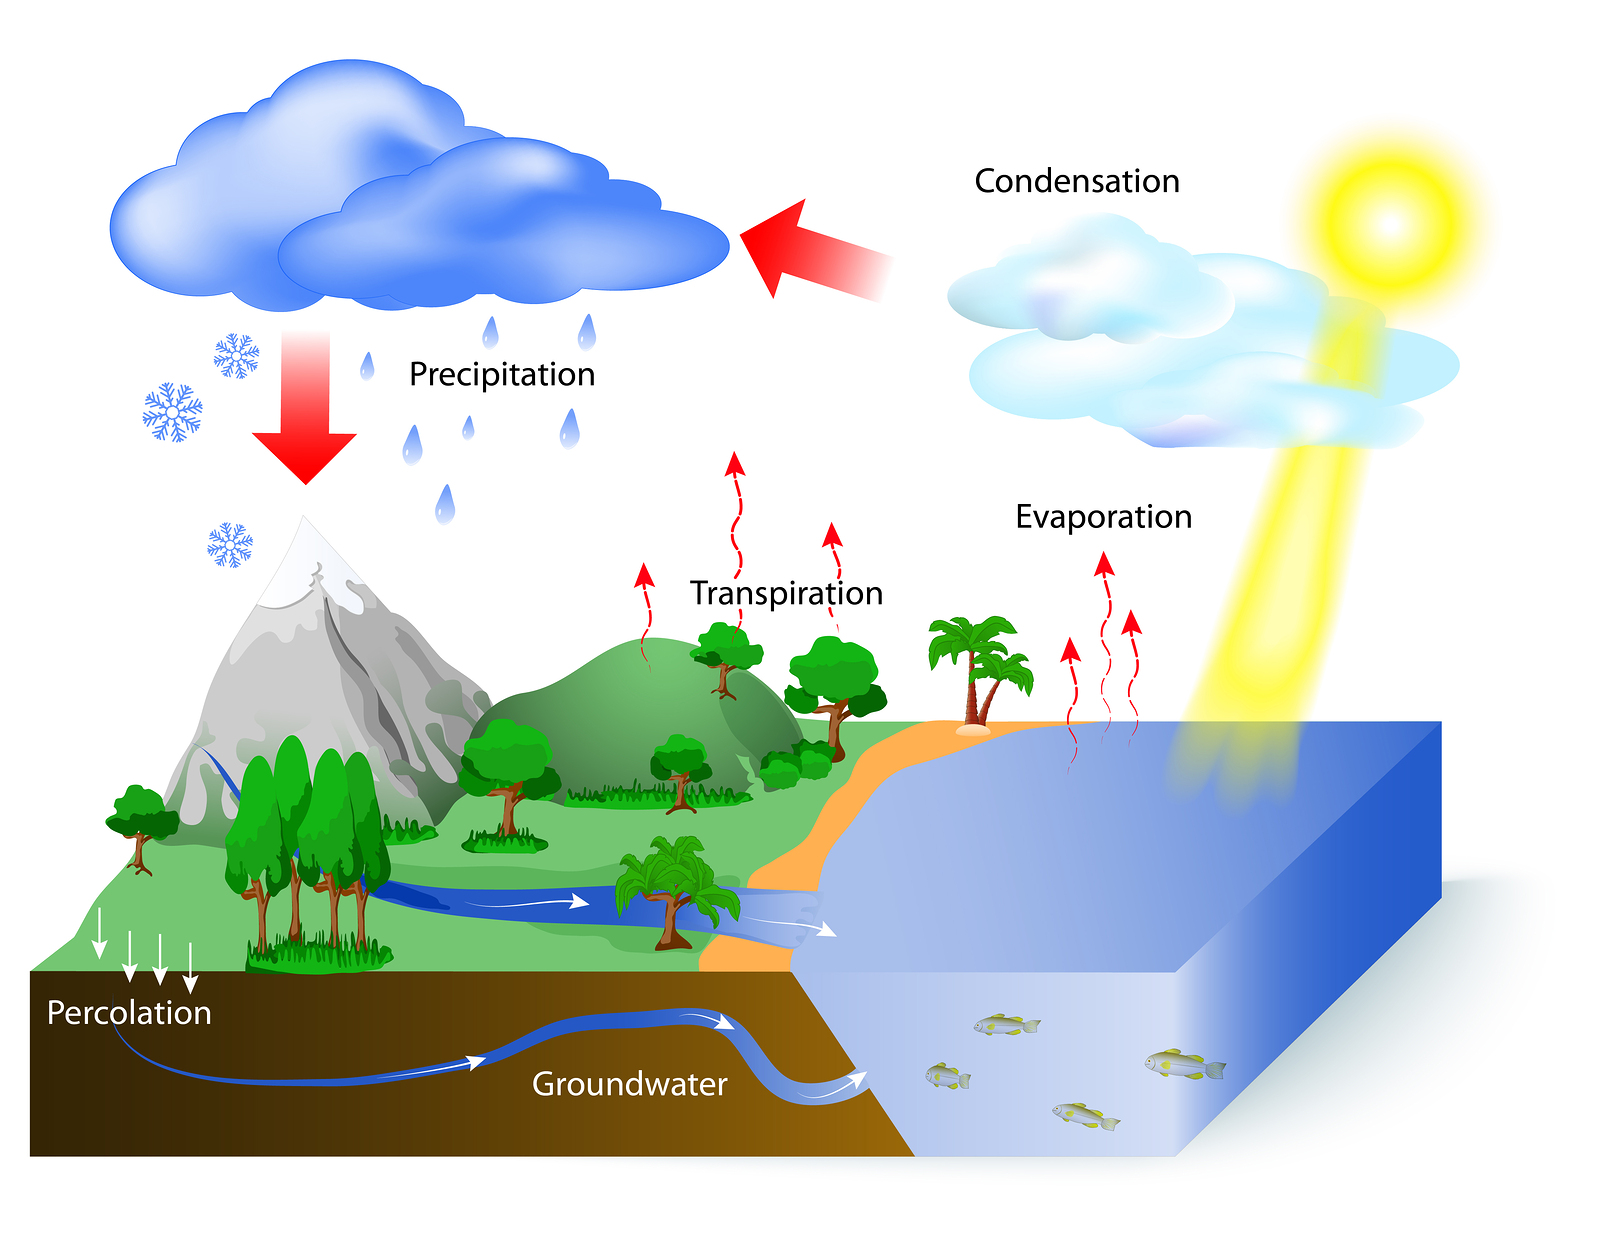 Water cycle diagram. The sun which drives the water cycle heats water in oceans and seas. Water evaporates as water vapor into the air. Labeled